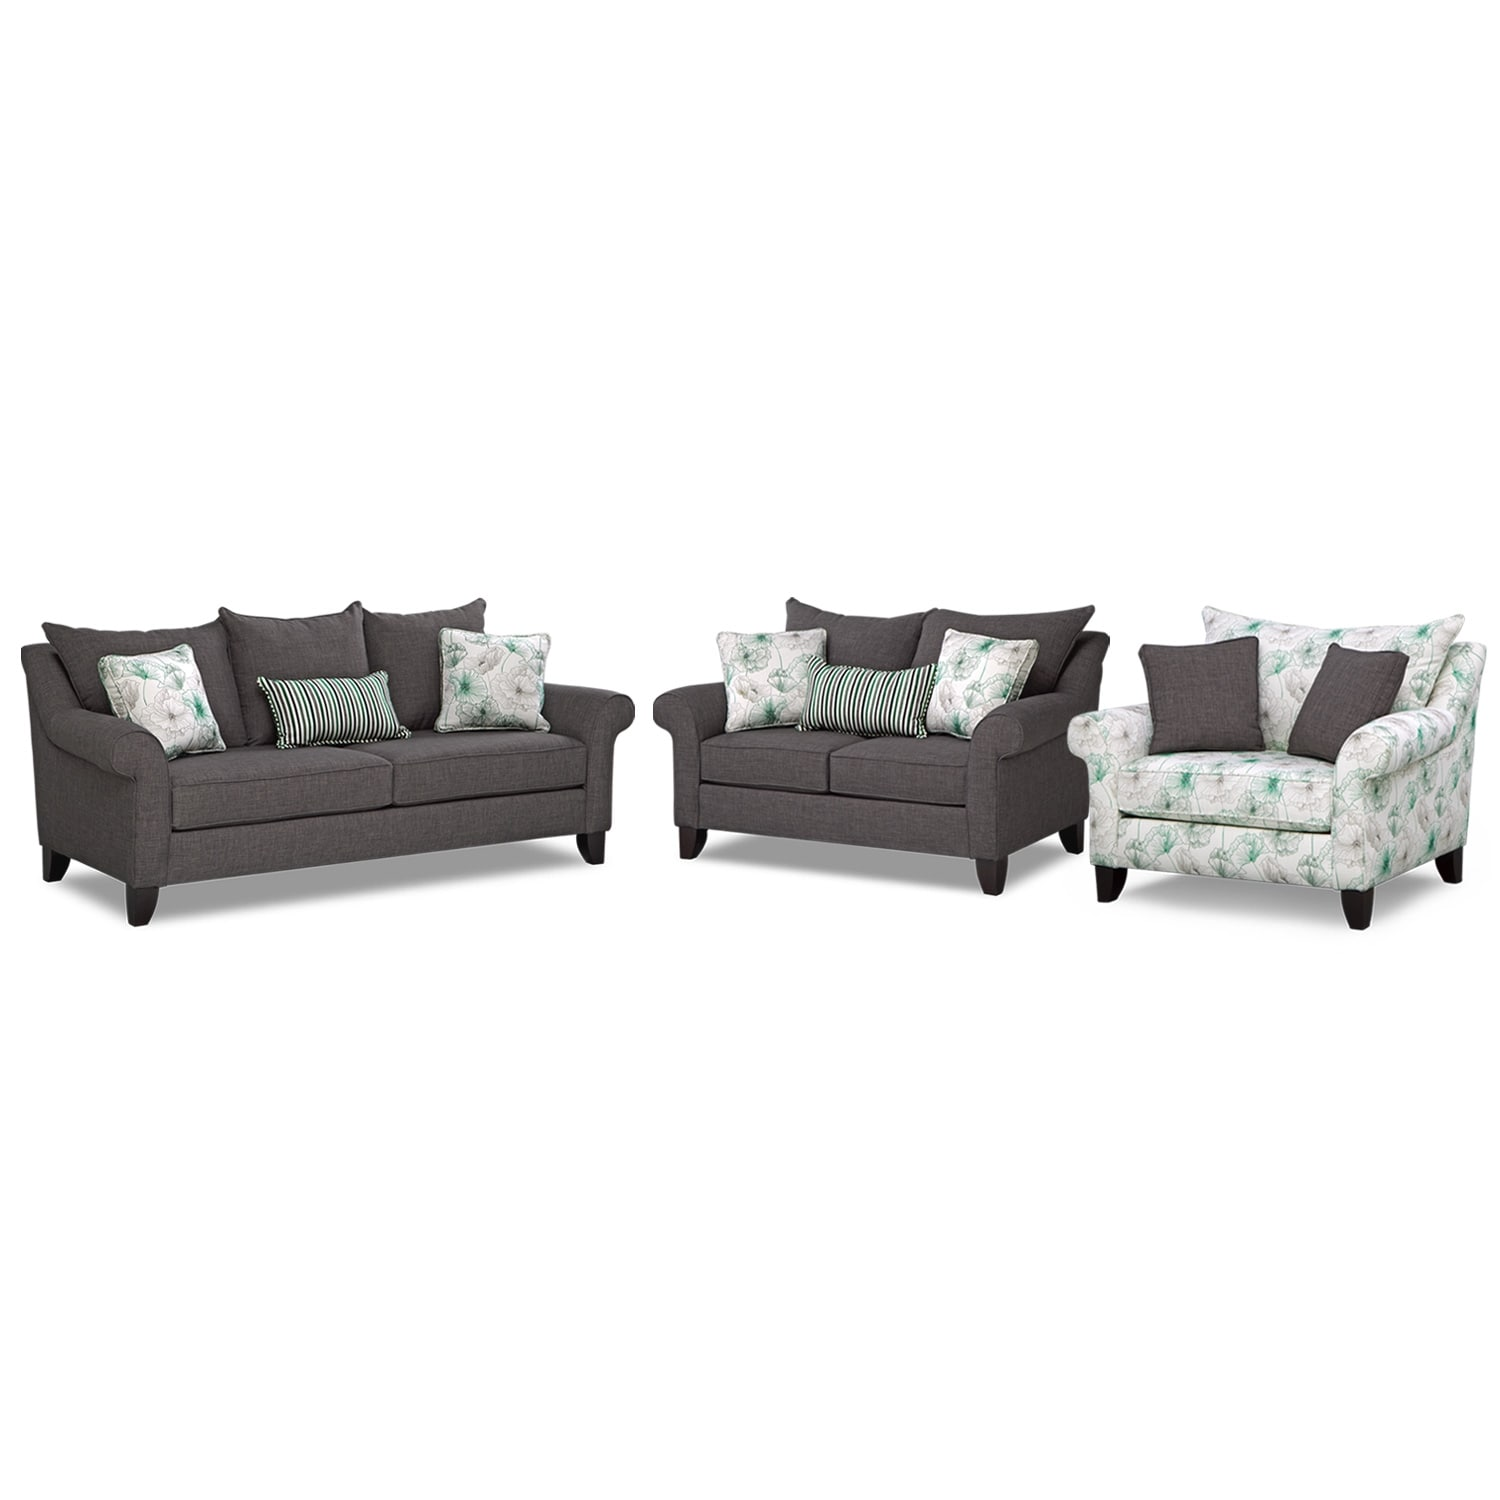 Living Room Furniture - Jasmine 3 Pc. Sleeper Living Room with Chair and a Half and Innerspring Mattress - Charcoal